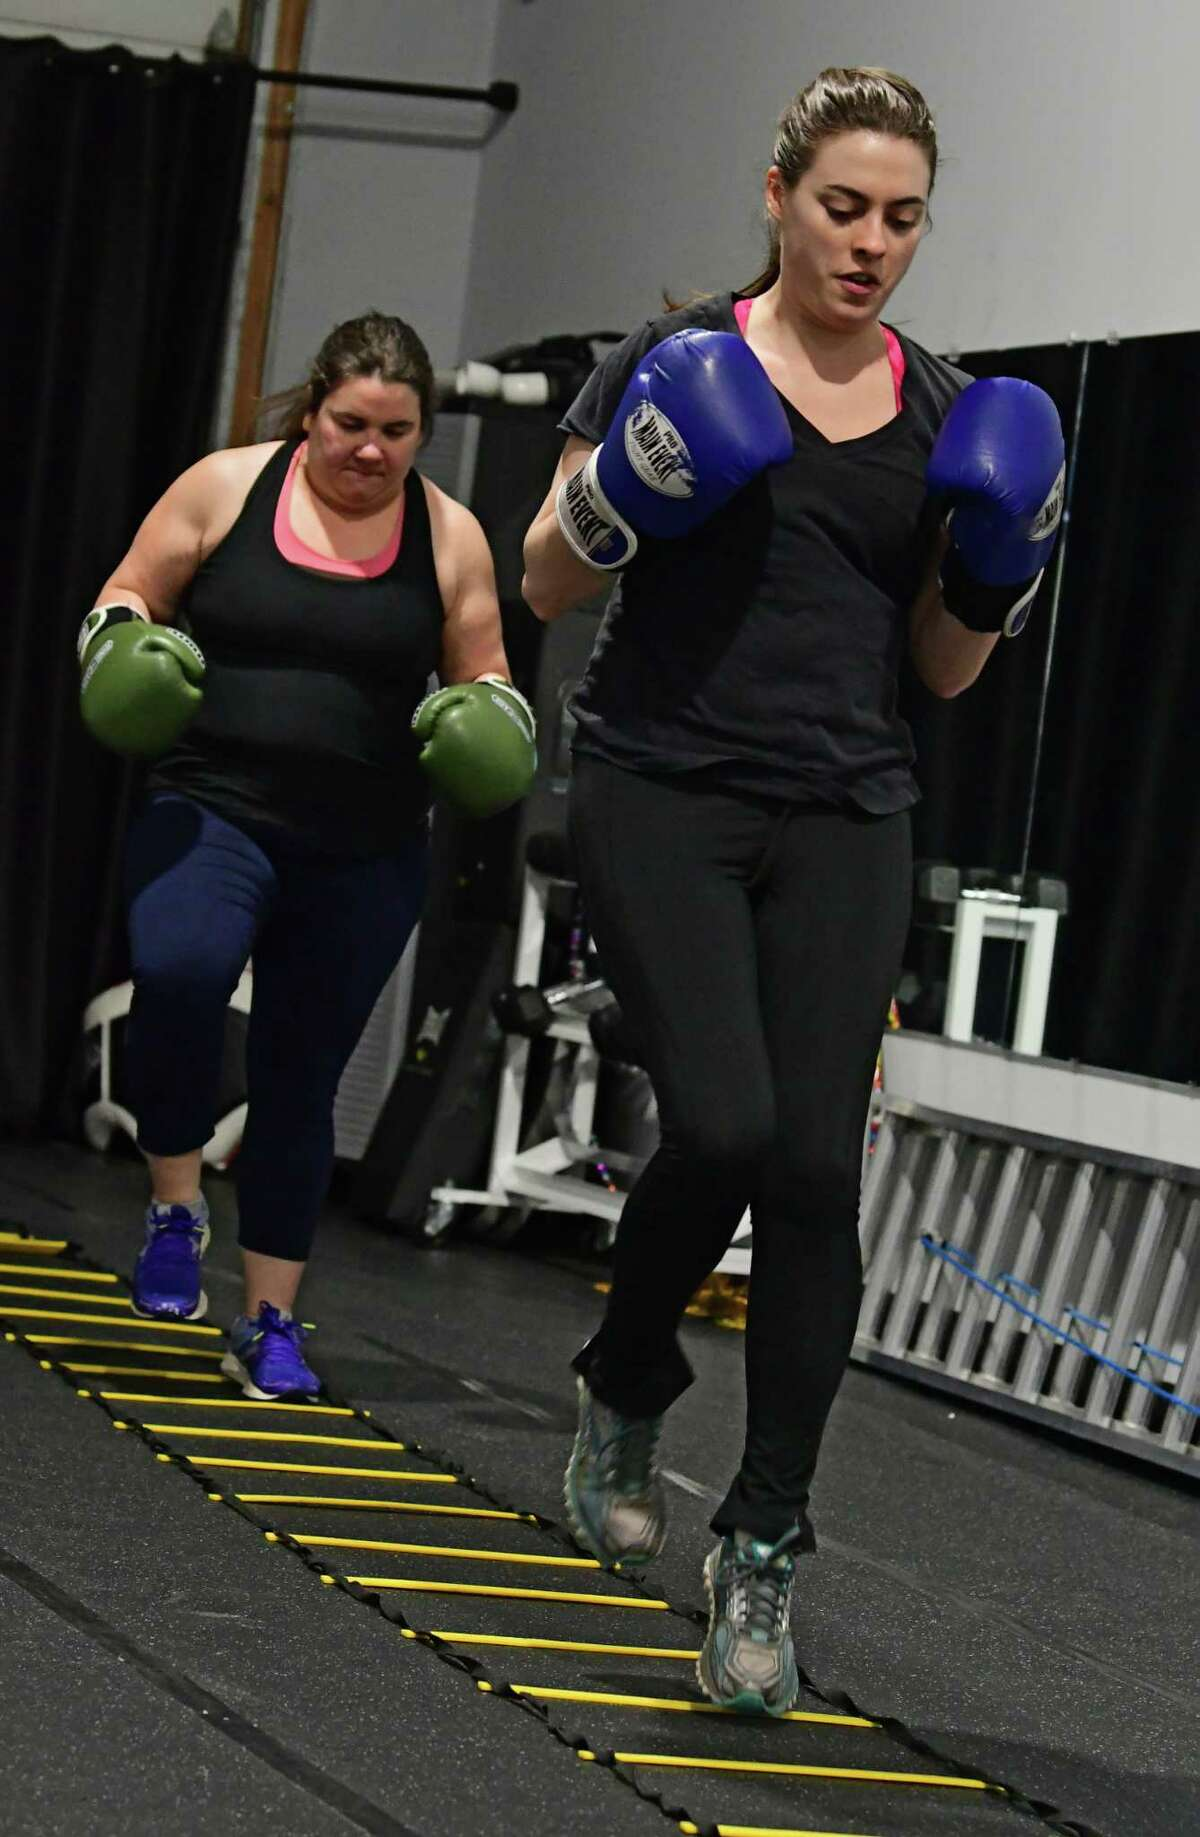 Times Union writer Sara Tracey, right, takes a boxing/HIIT class lead by Rick Angerami at PIT Fitness on Thursday, Feb. 28, 2019 in Colonie, N.Y. Rick runs Cap City Fitness. (Lori Van Buren/Times Union)